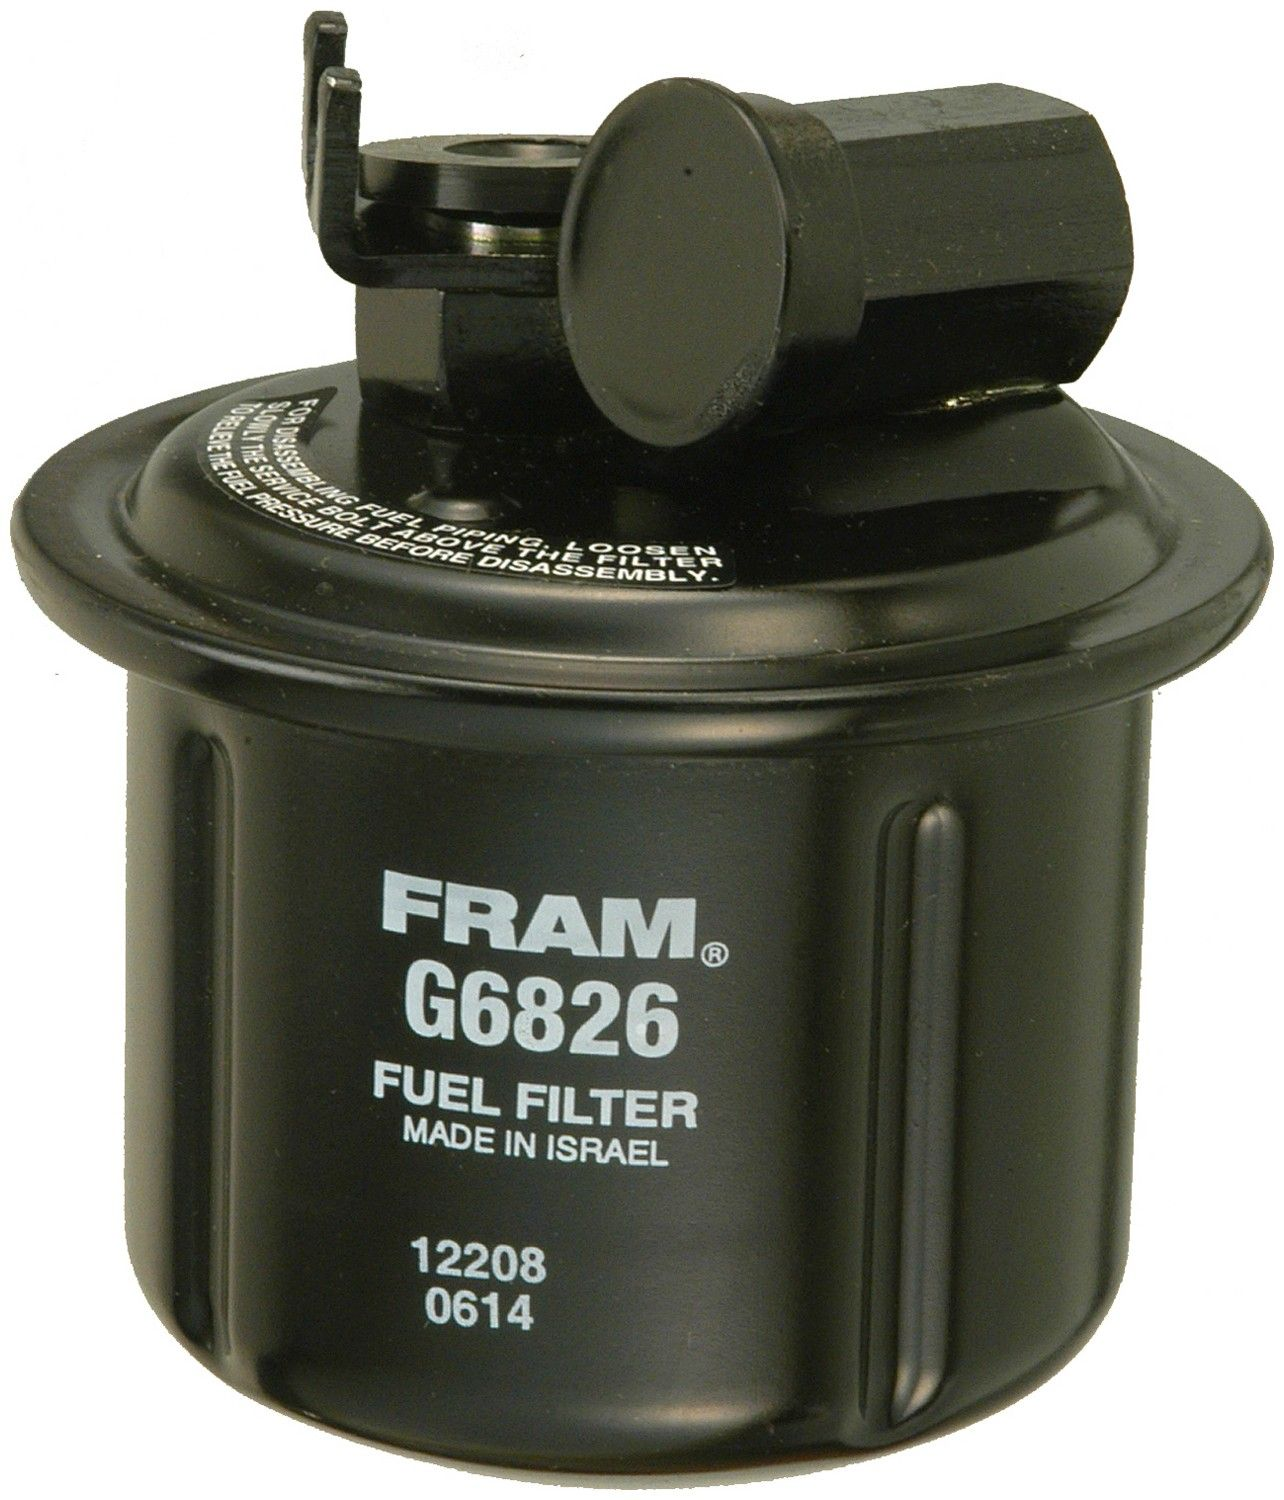 1992 Honda Civic Fuel Filter 4 Cyl 1.5L (Fram G6826) In-Line Fuel Filter  Unit box product .